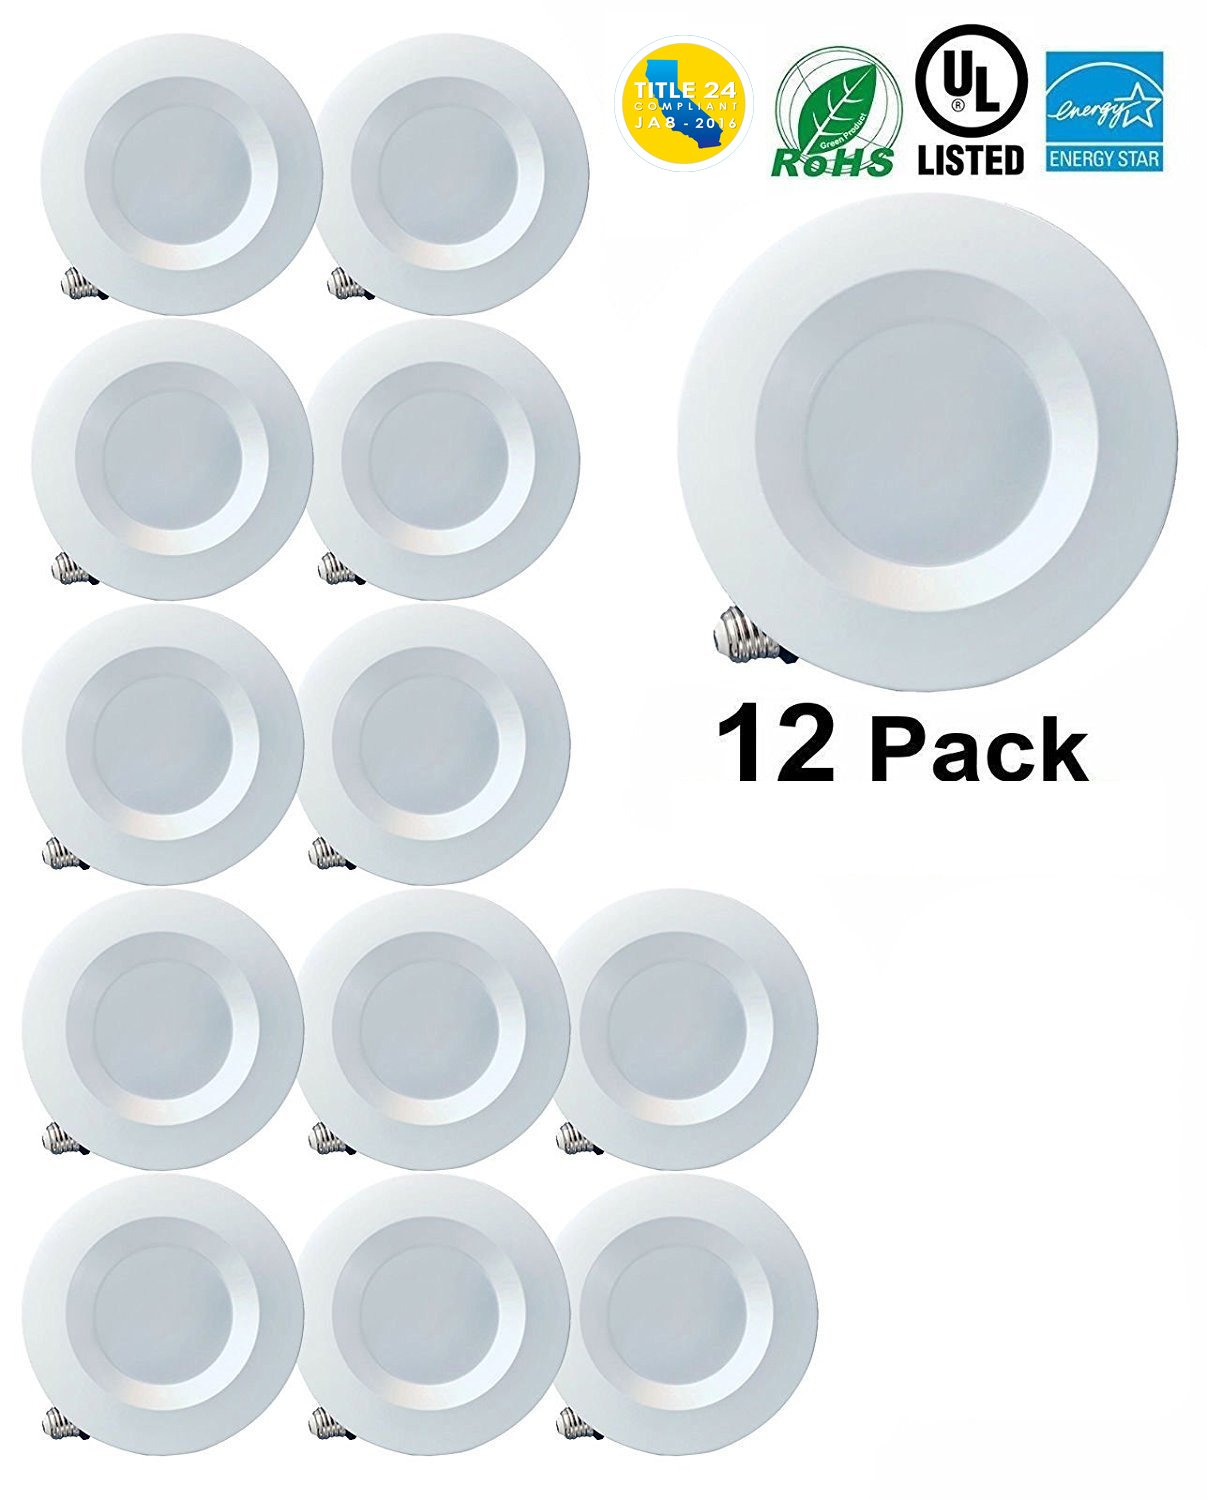 5'' / 6'' Dimmable LED Downlight Smooth Trim, 1100 Lumens, 4000K Cool White, Recessed Retrofit Lighting Trim, 15W (120W Replacement), ENERGY STAR UL Listed,TITLE 24 JA8 2016 Compliant 16 Pack